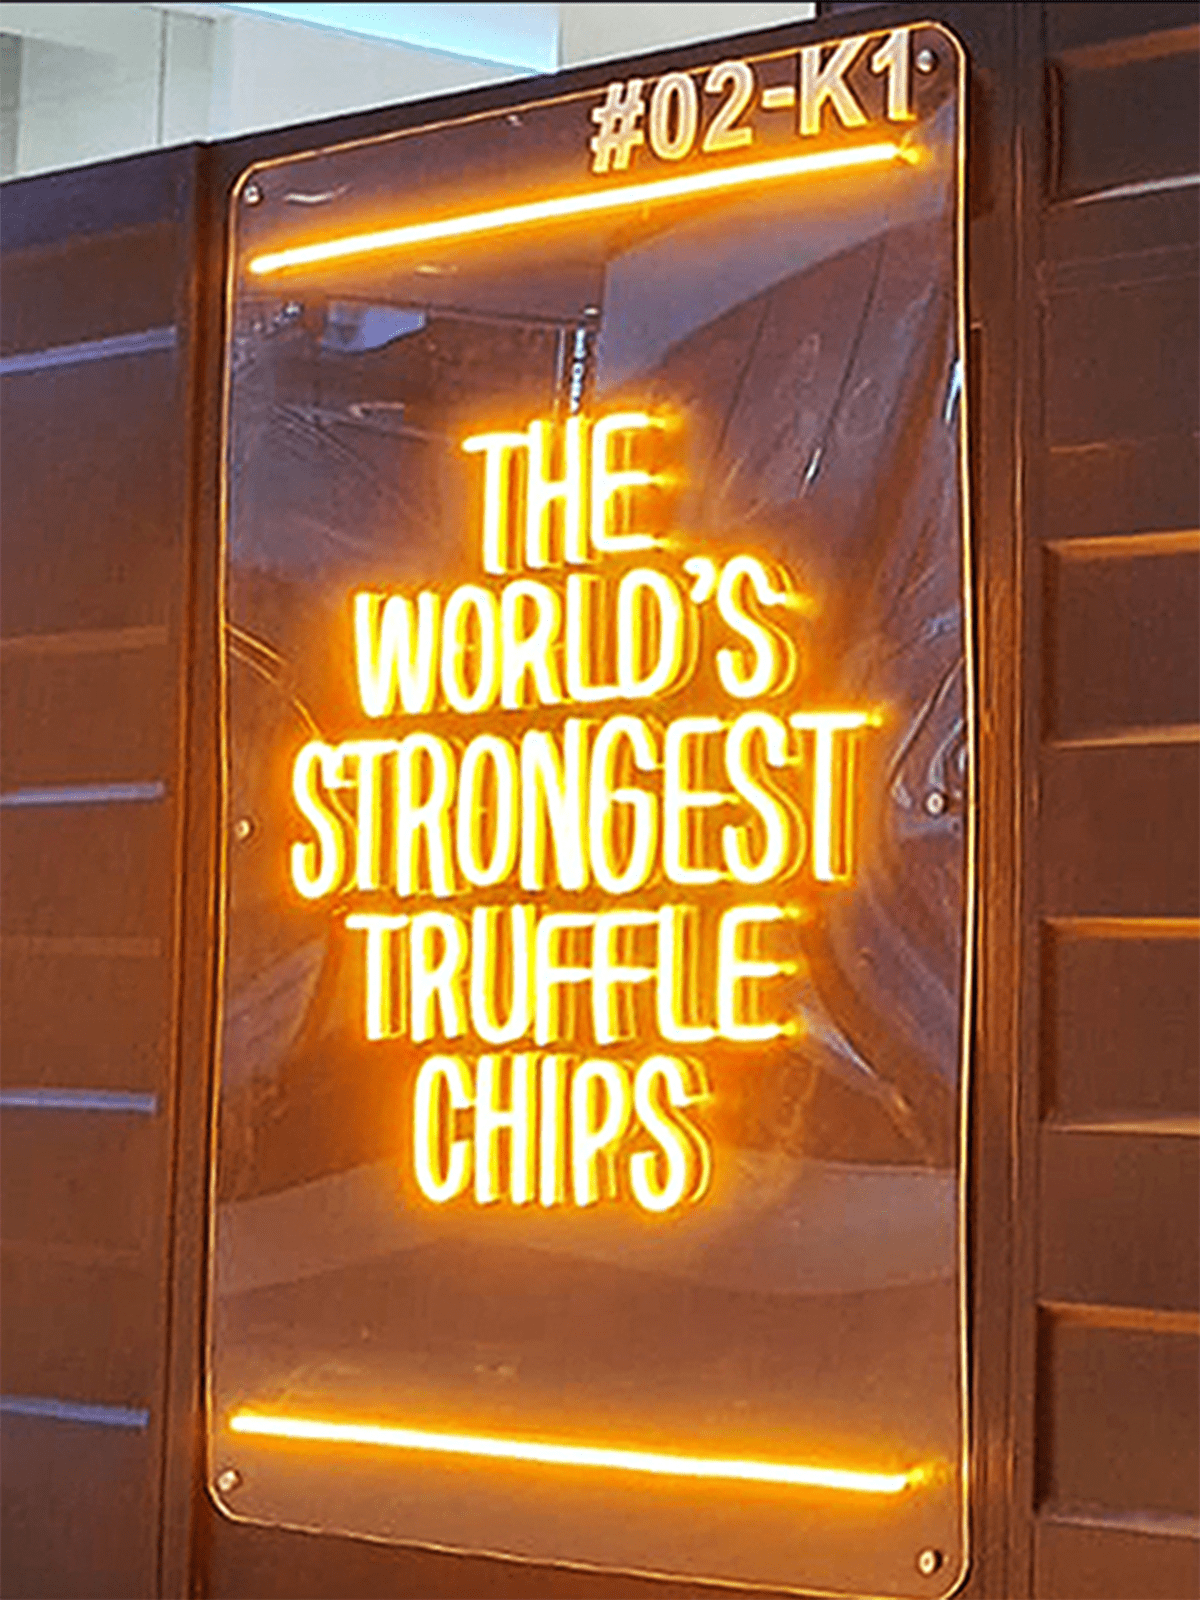 the world's strongest truffle chips